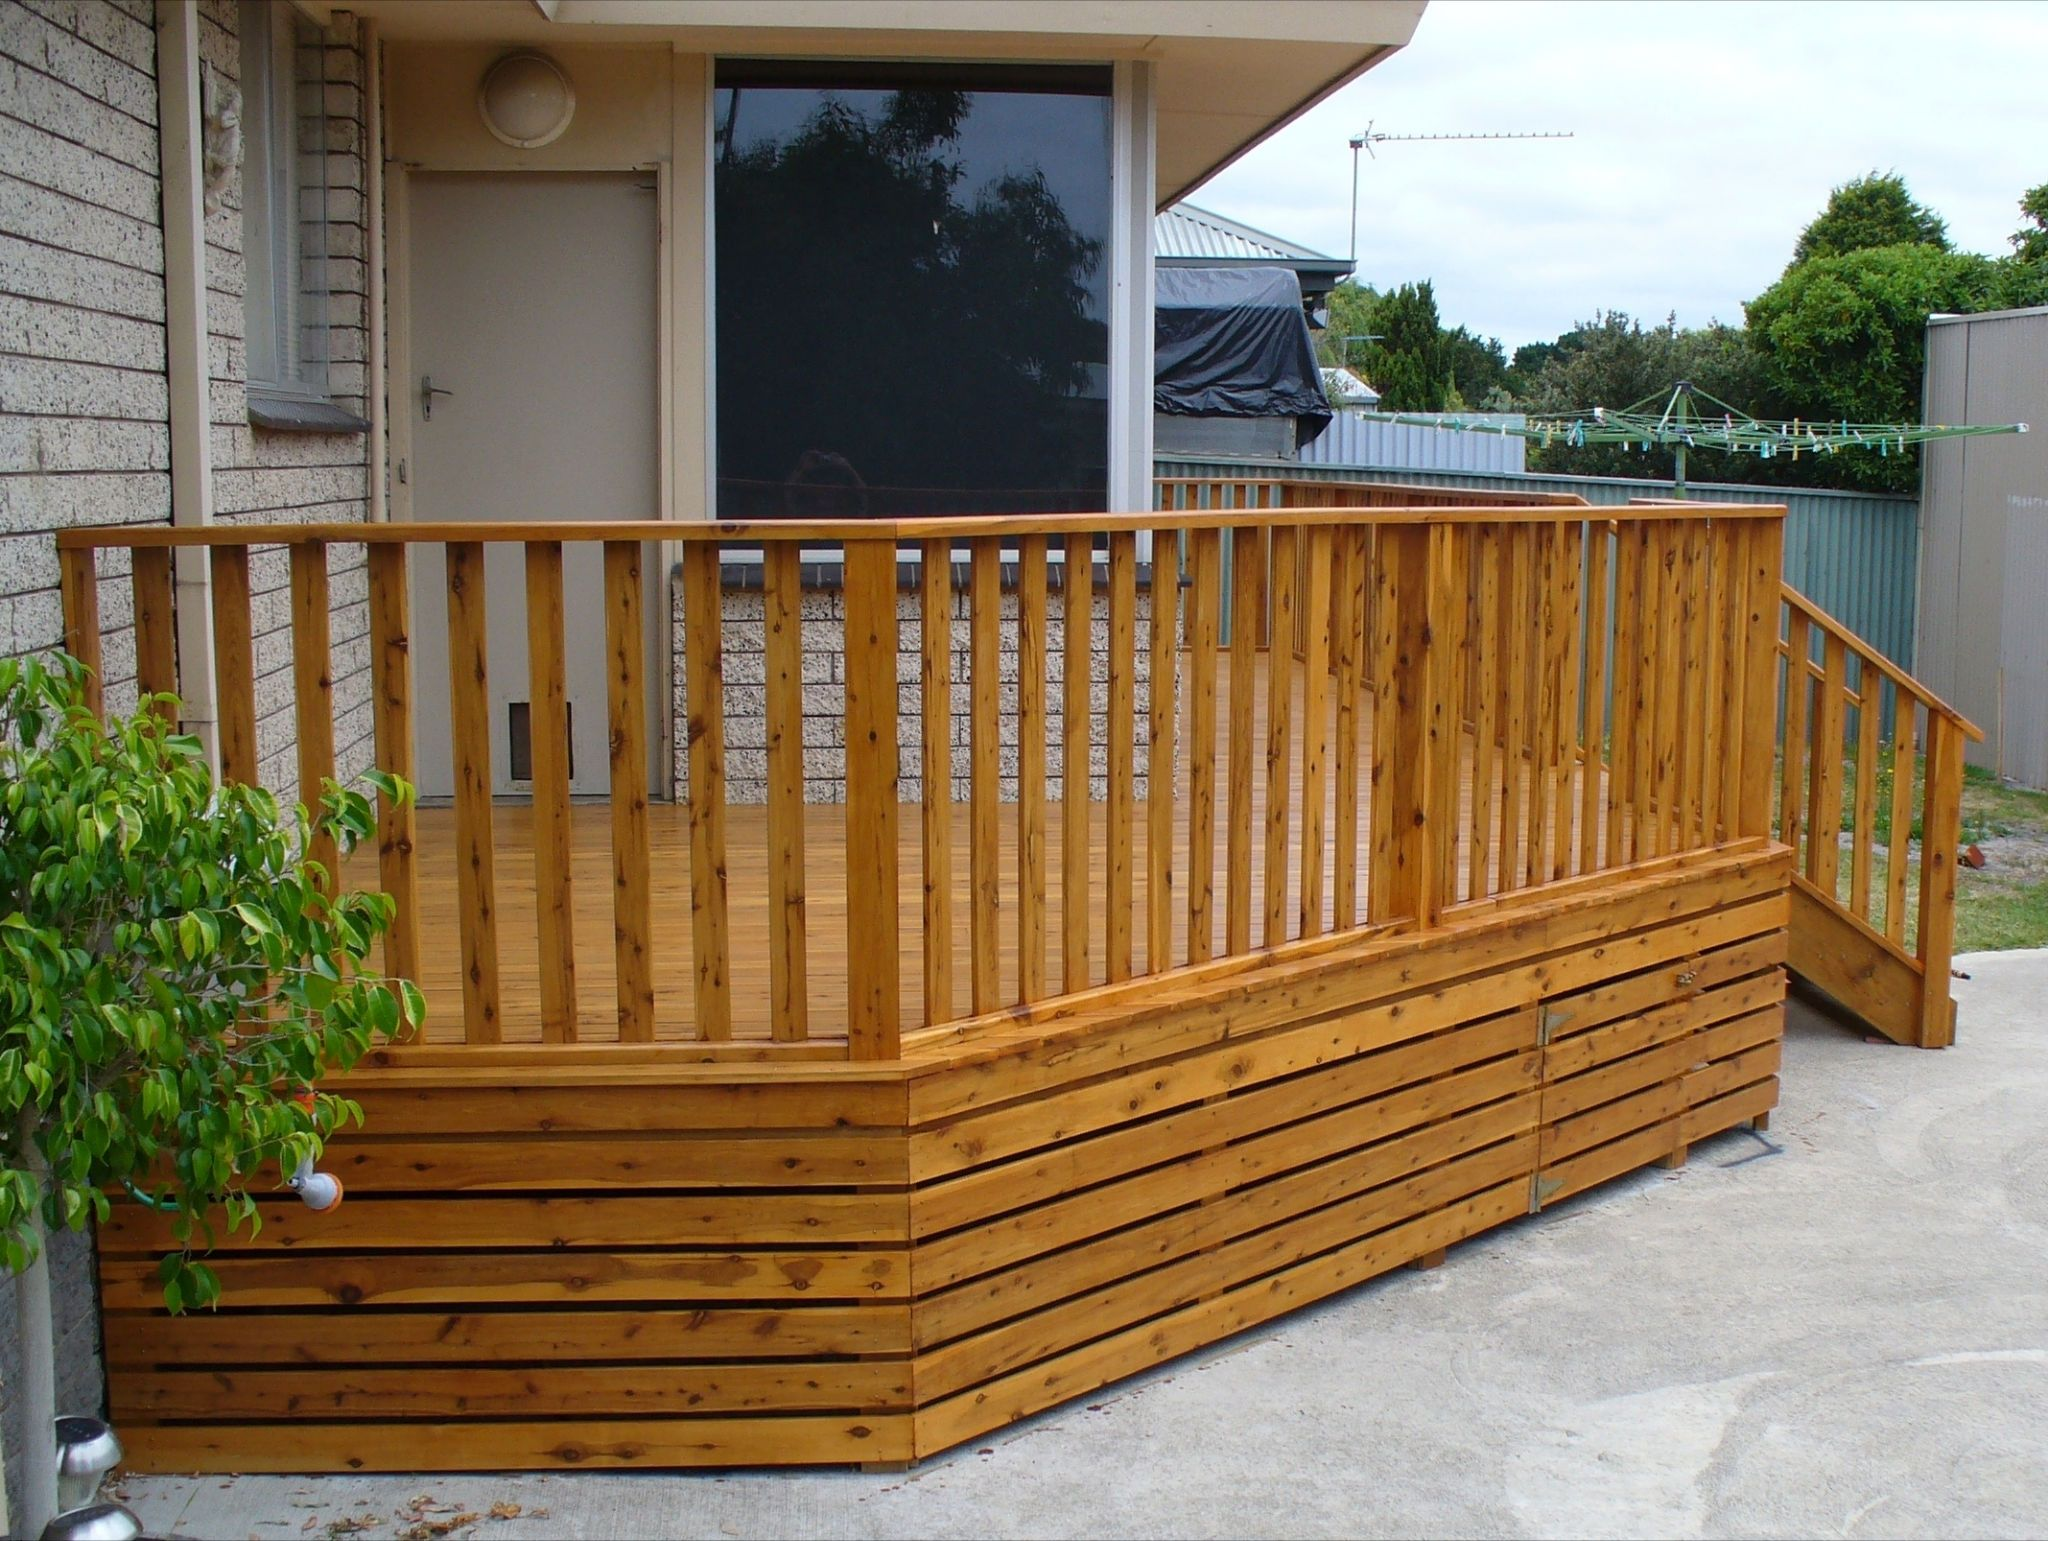 15 Superb Deck Design Cool Deck Skirting Ideas for Every Home